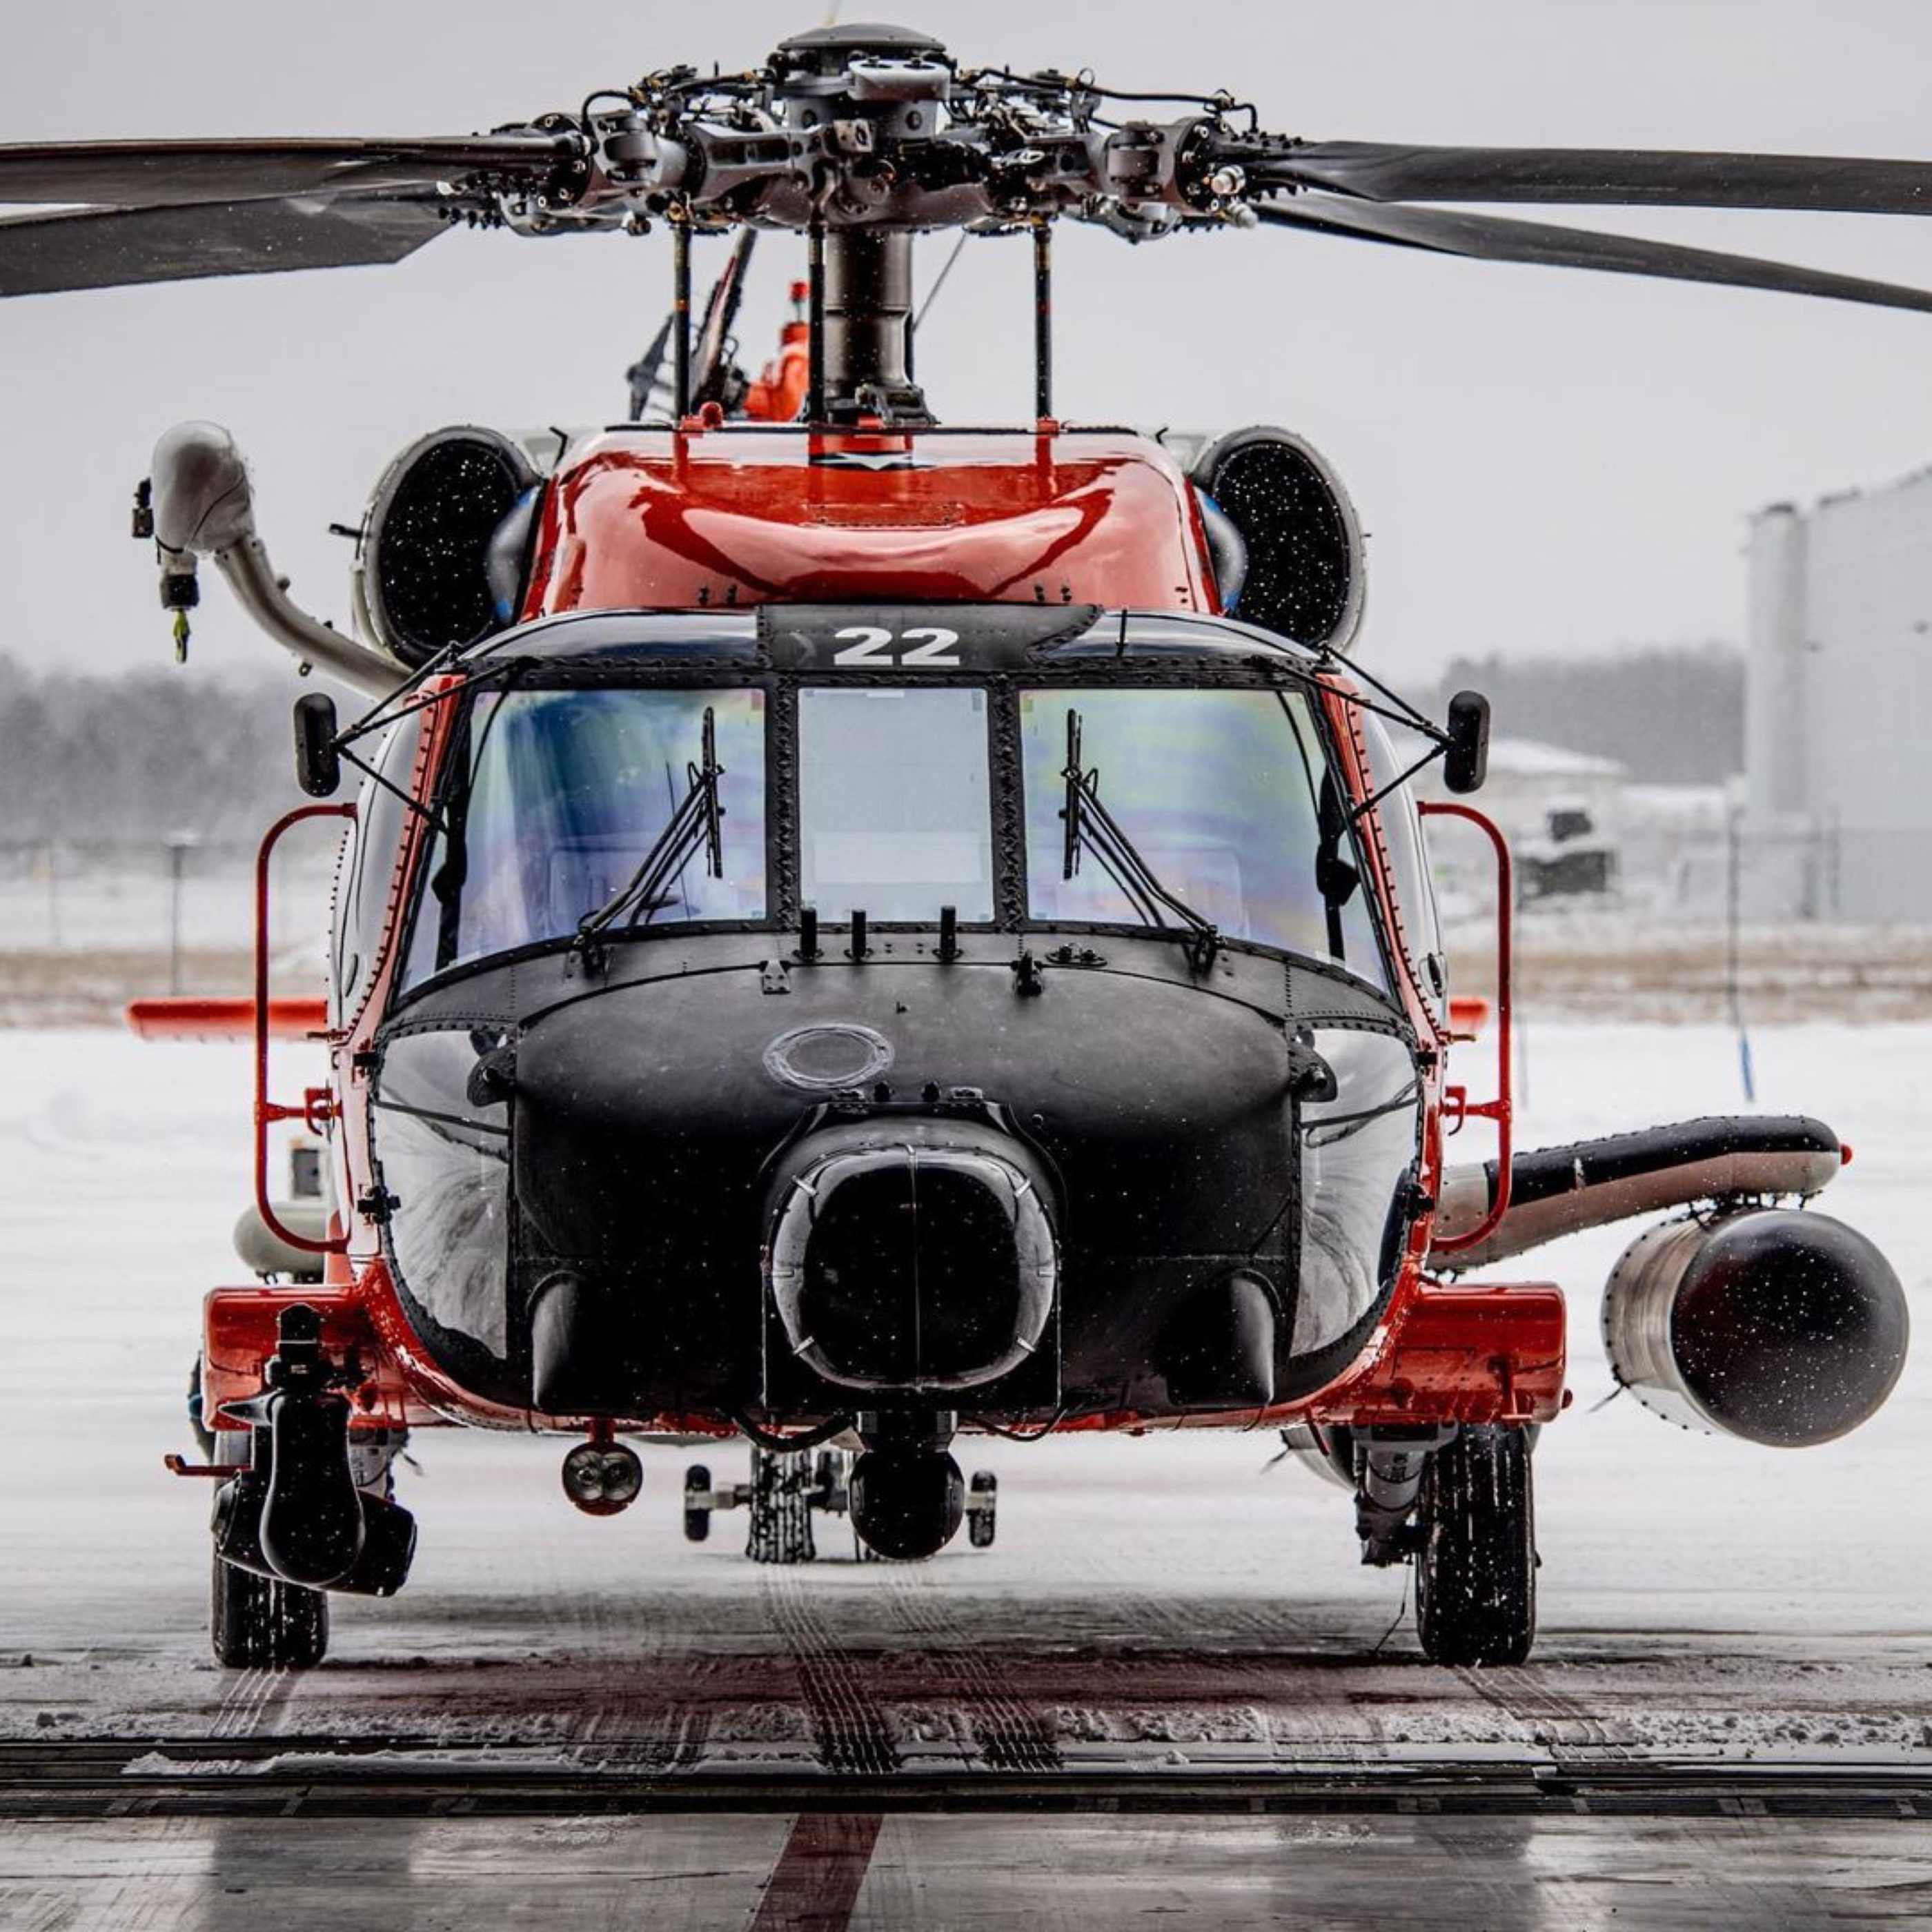 An extra-shiny U.S. Coast Guard MH-60T Jayhawk. Photo submitted by Instagram user @wryan.webb using #verticalmag